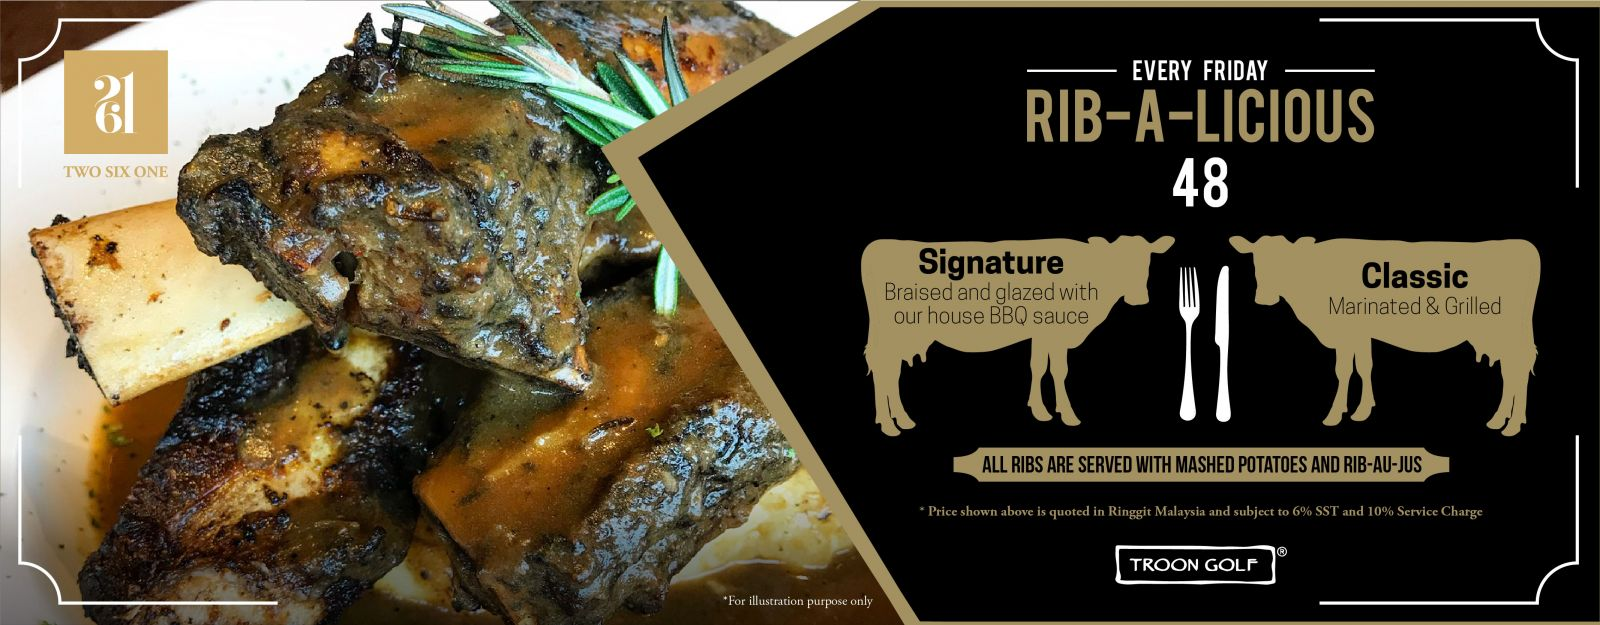 every friday rib-a-licious